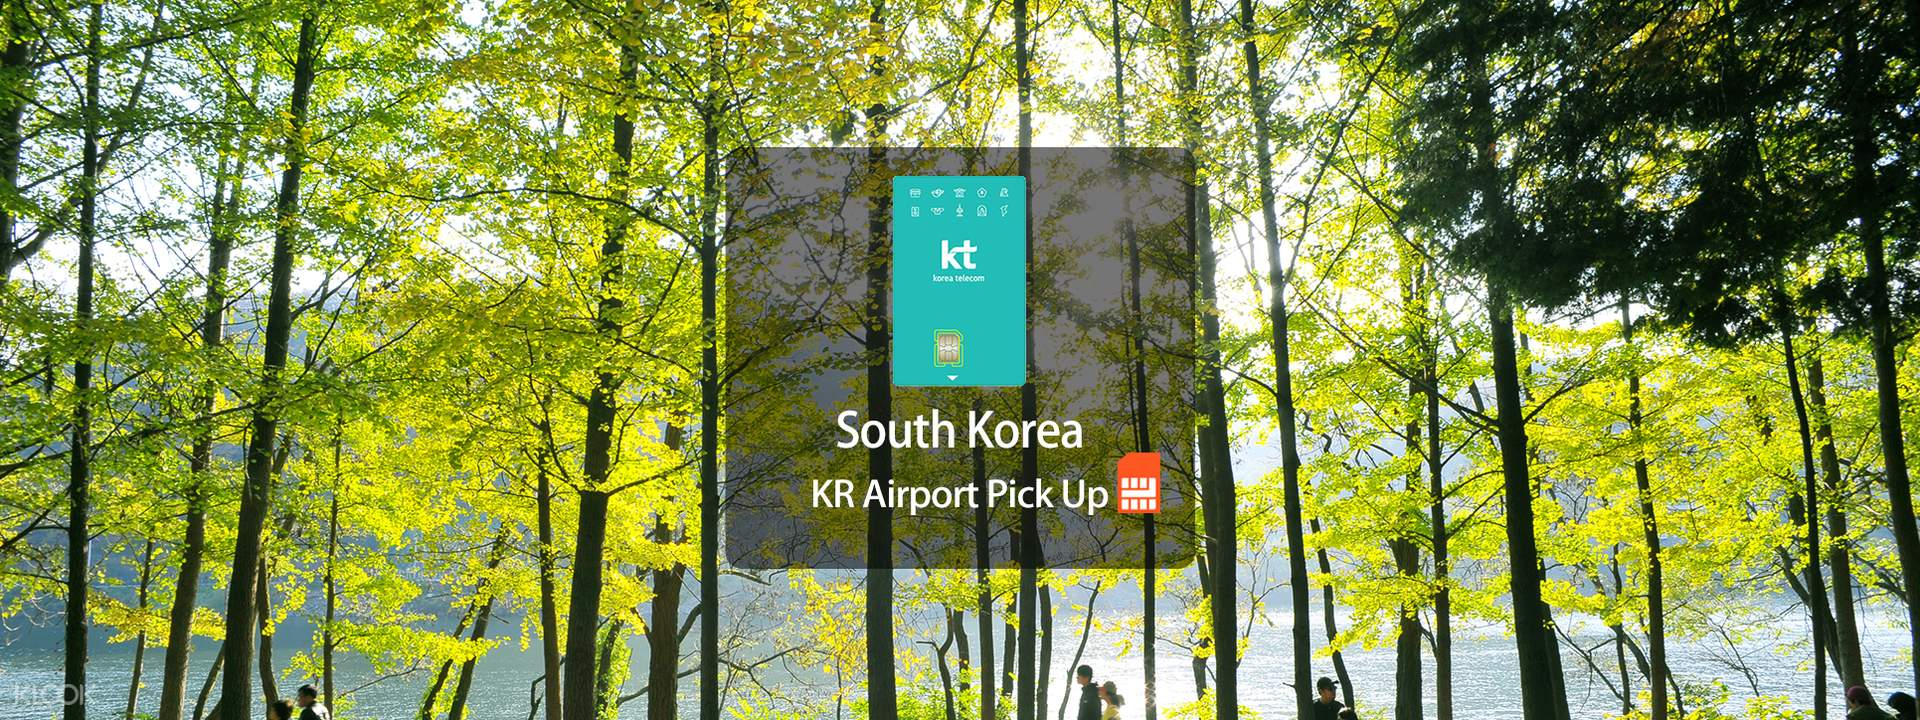 4G SIM Card (KR Pick Up) for South Korea from KT Olleh - Klook